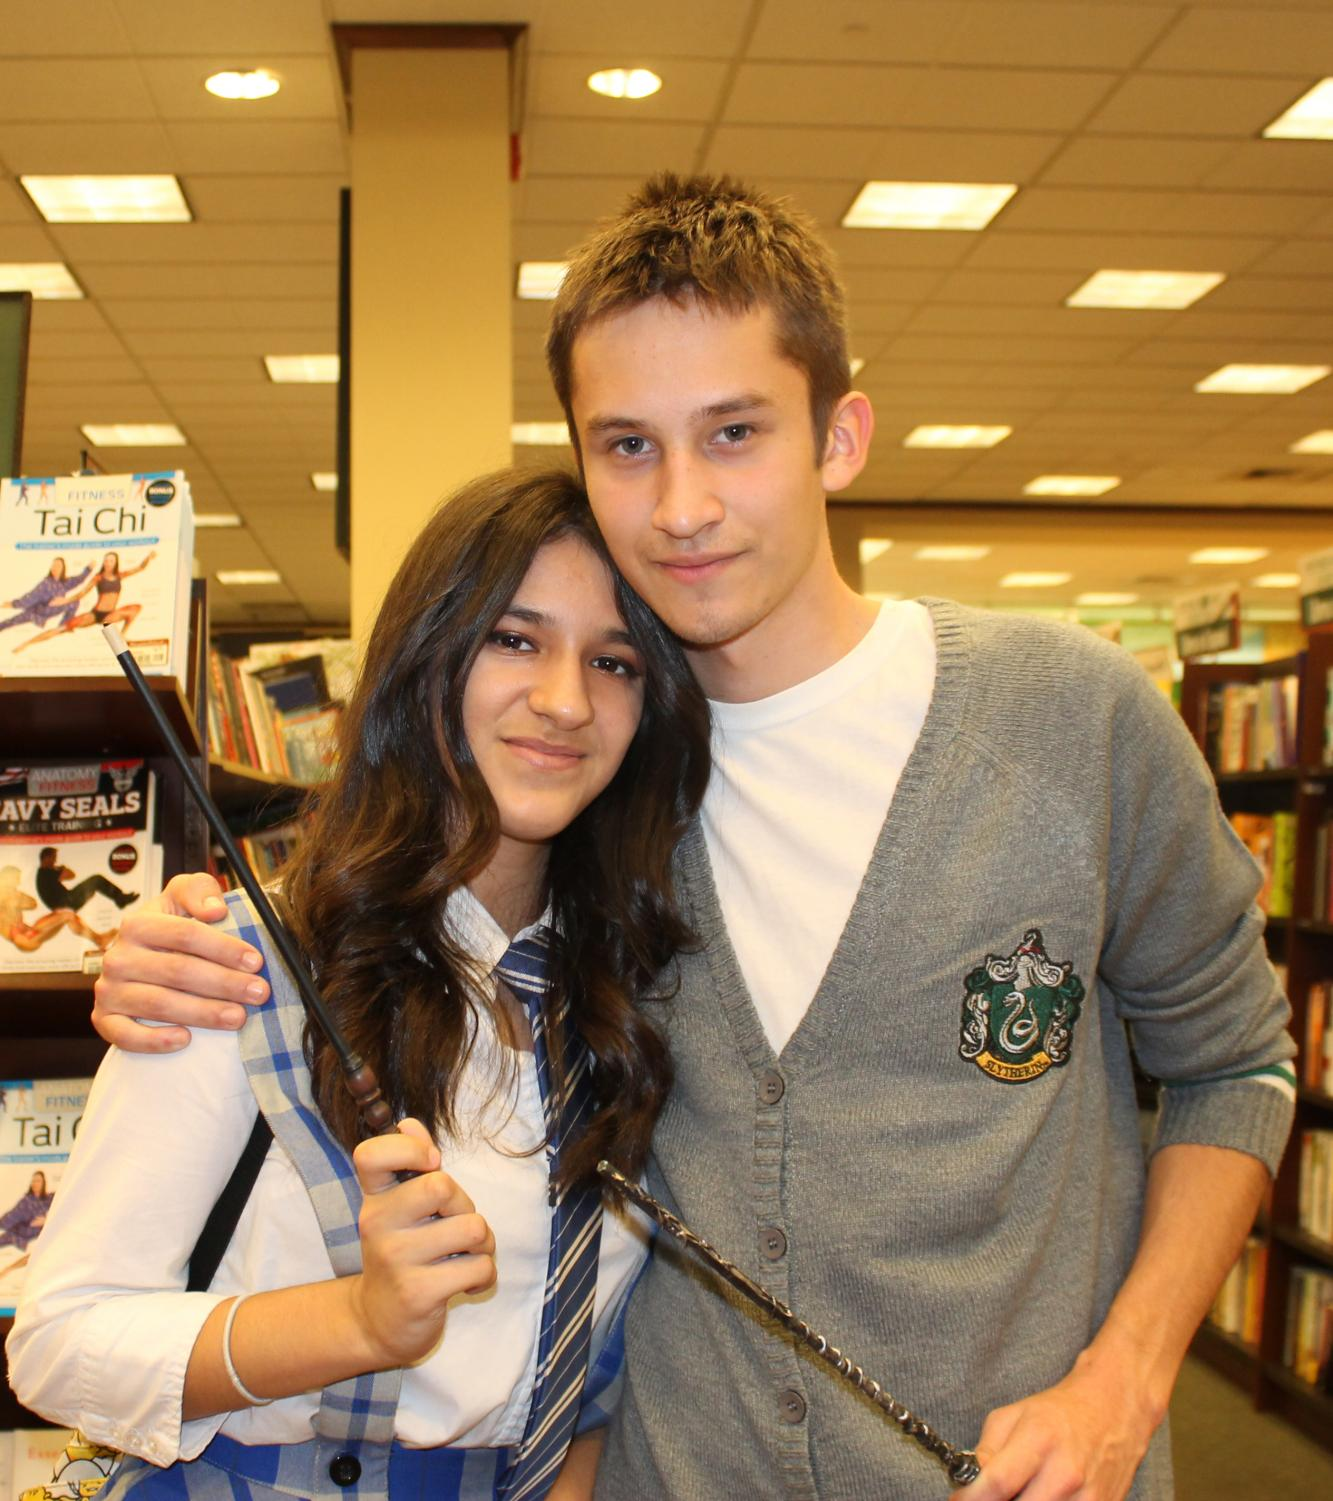 Mayra Lopez and Neil Zuazo attend a Harry Potter celebration dressed as book characters.